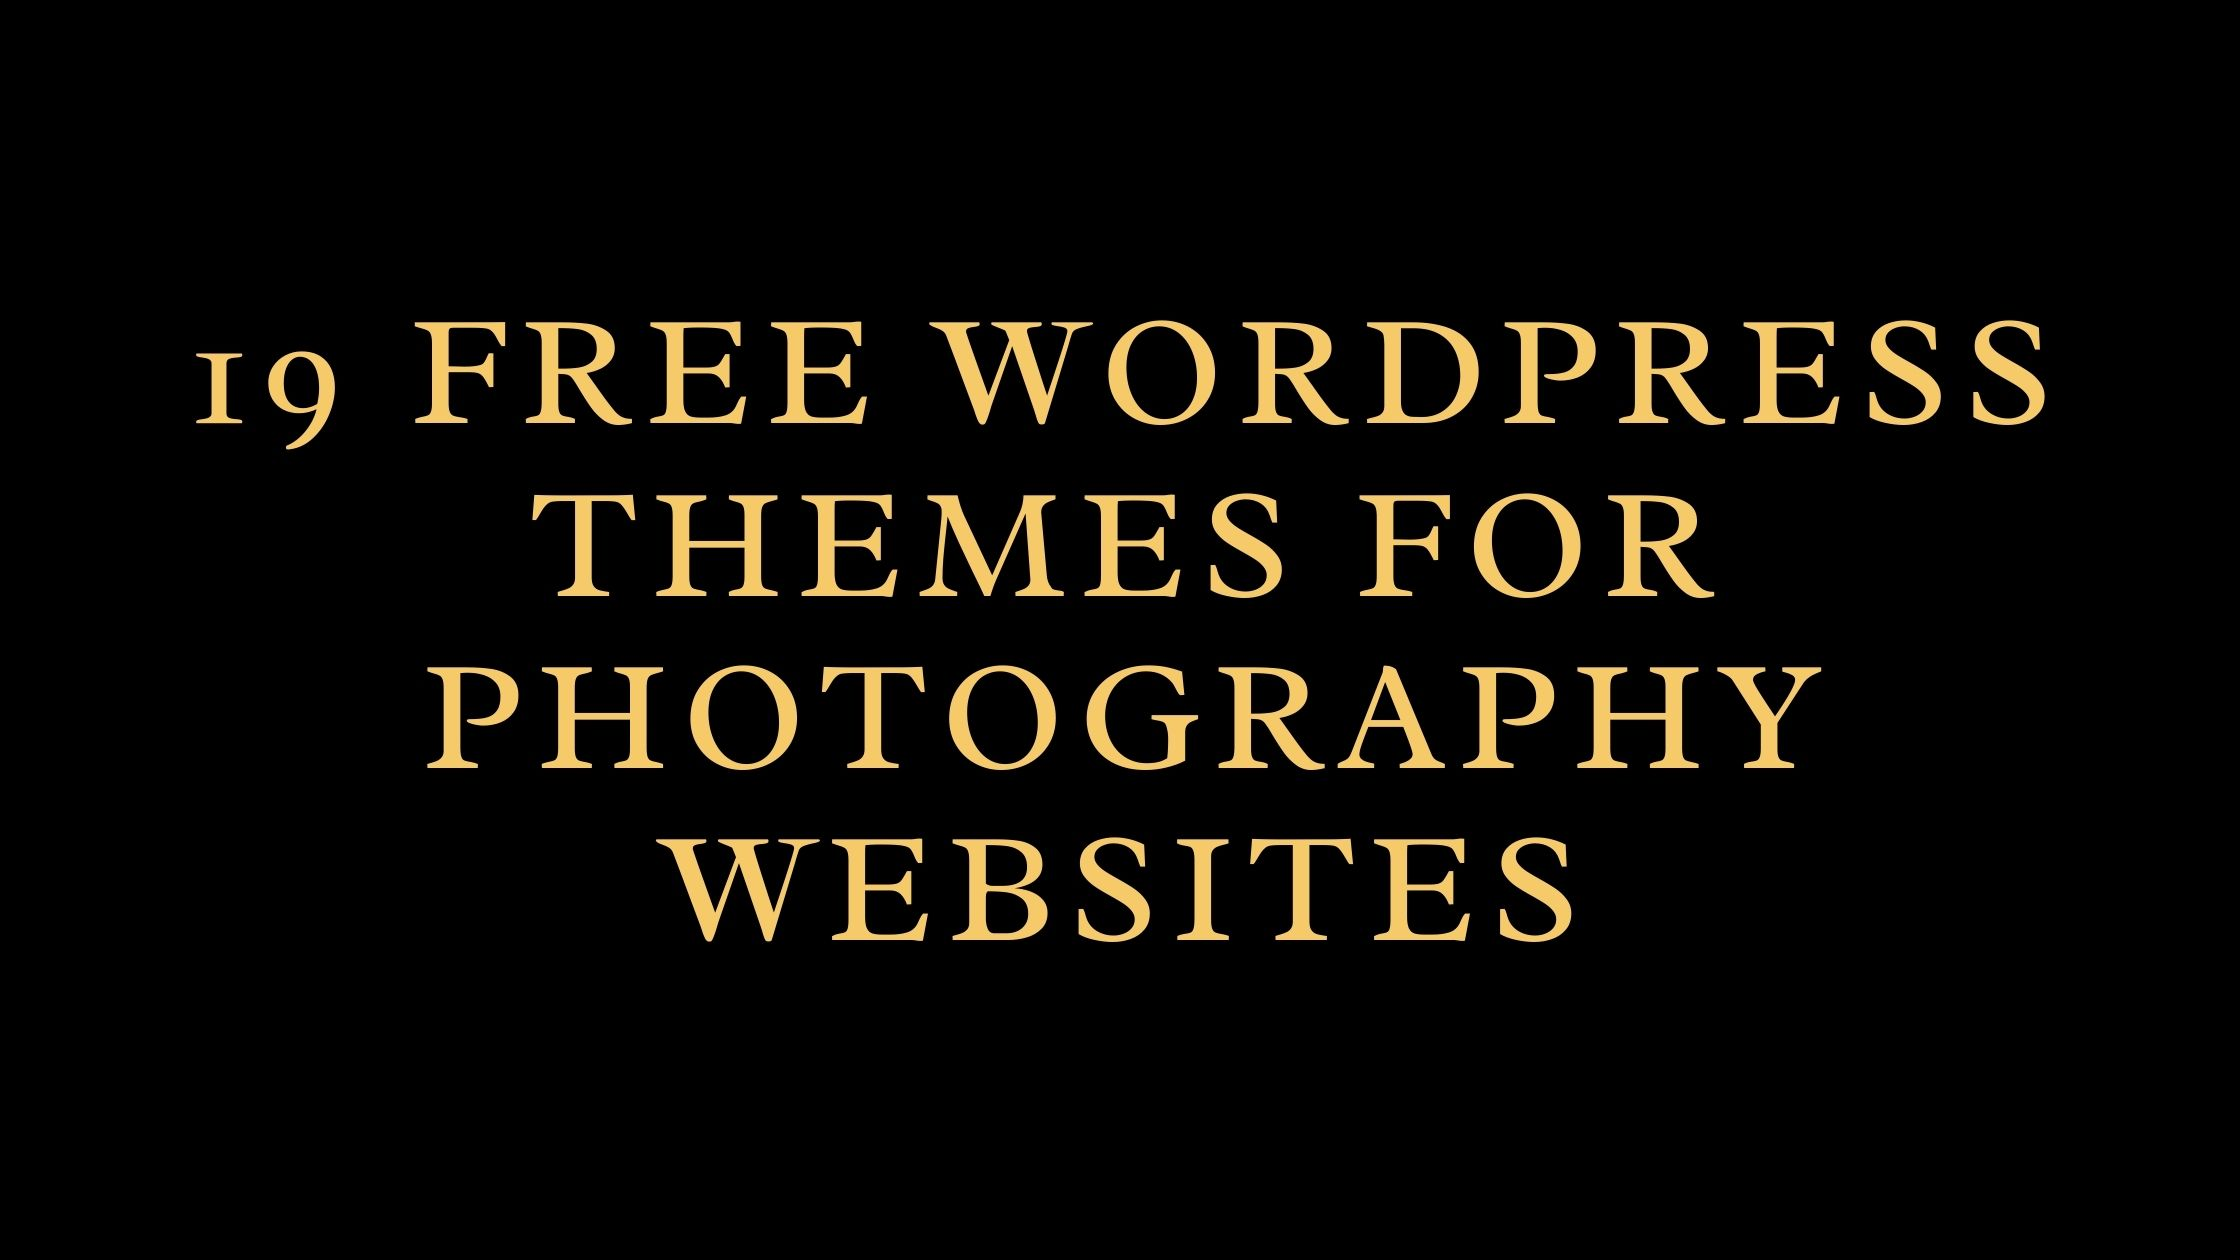 Free WordPress Themes For Photography Websites